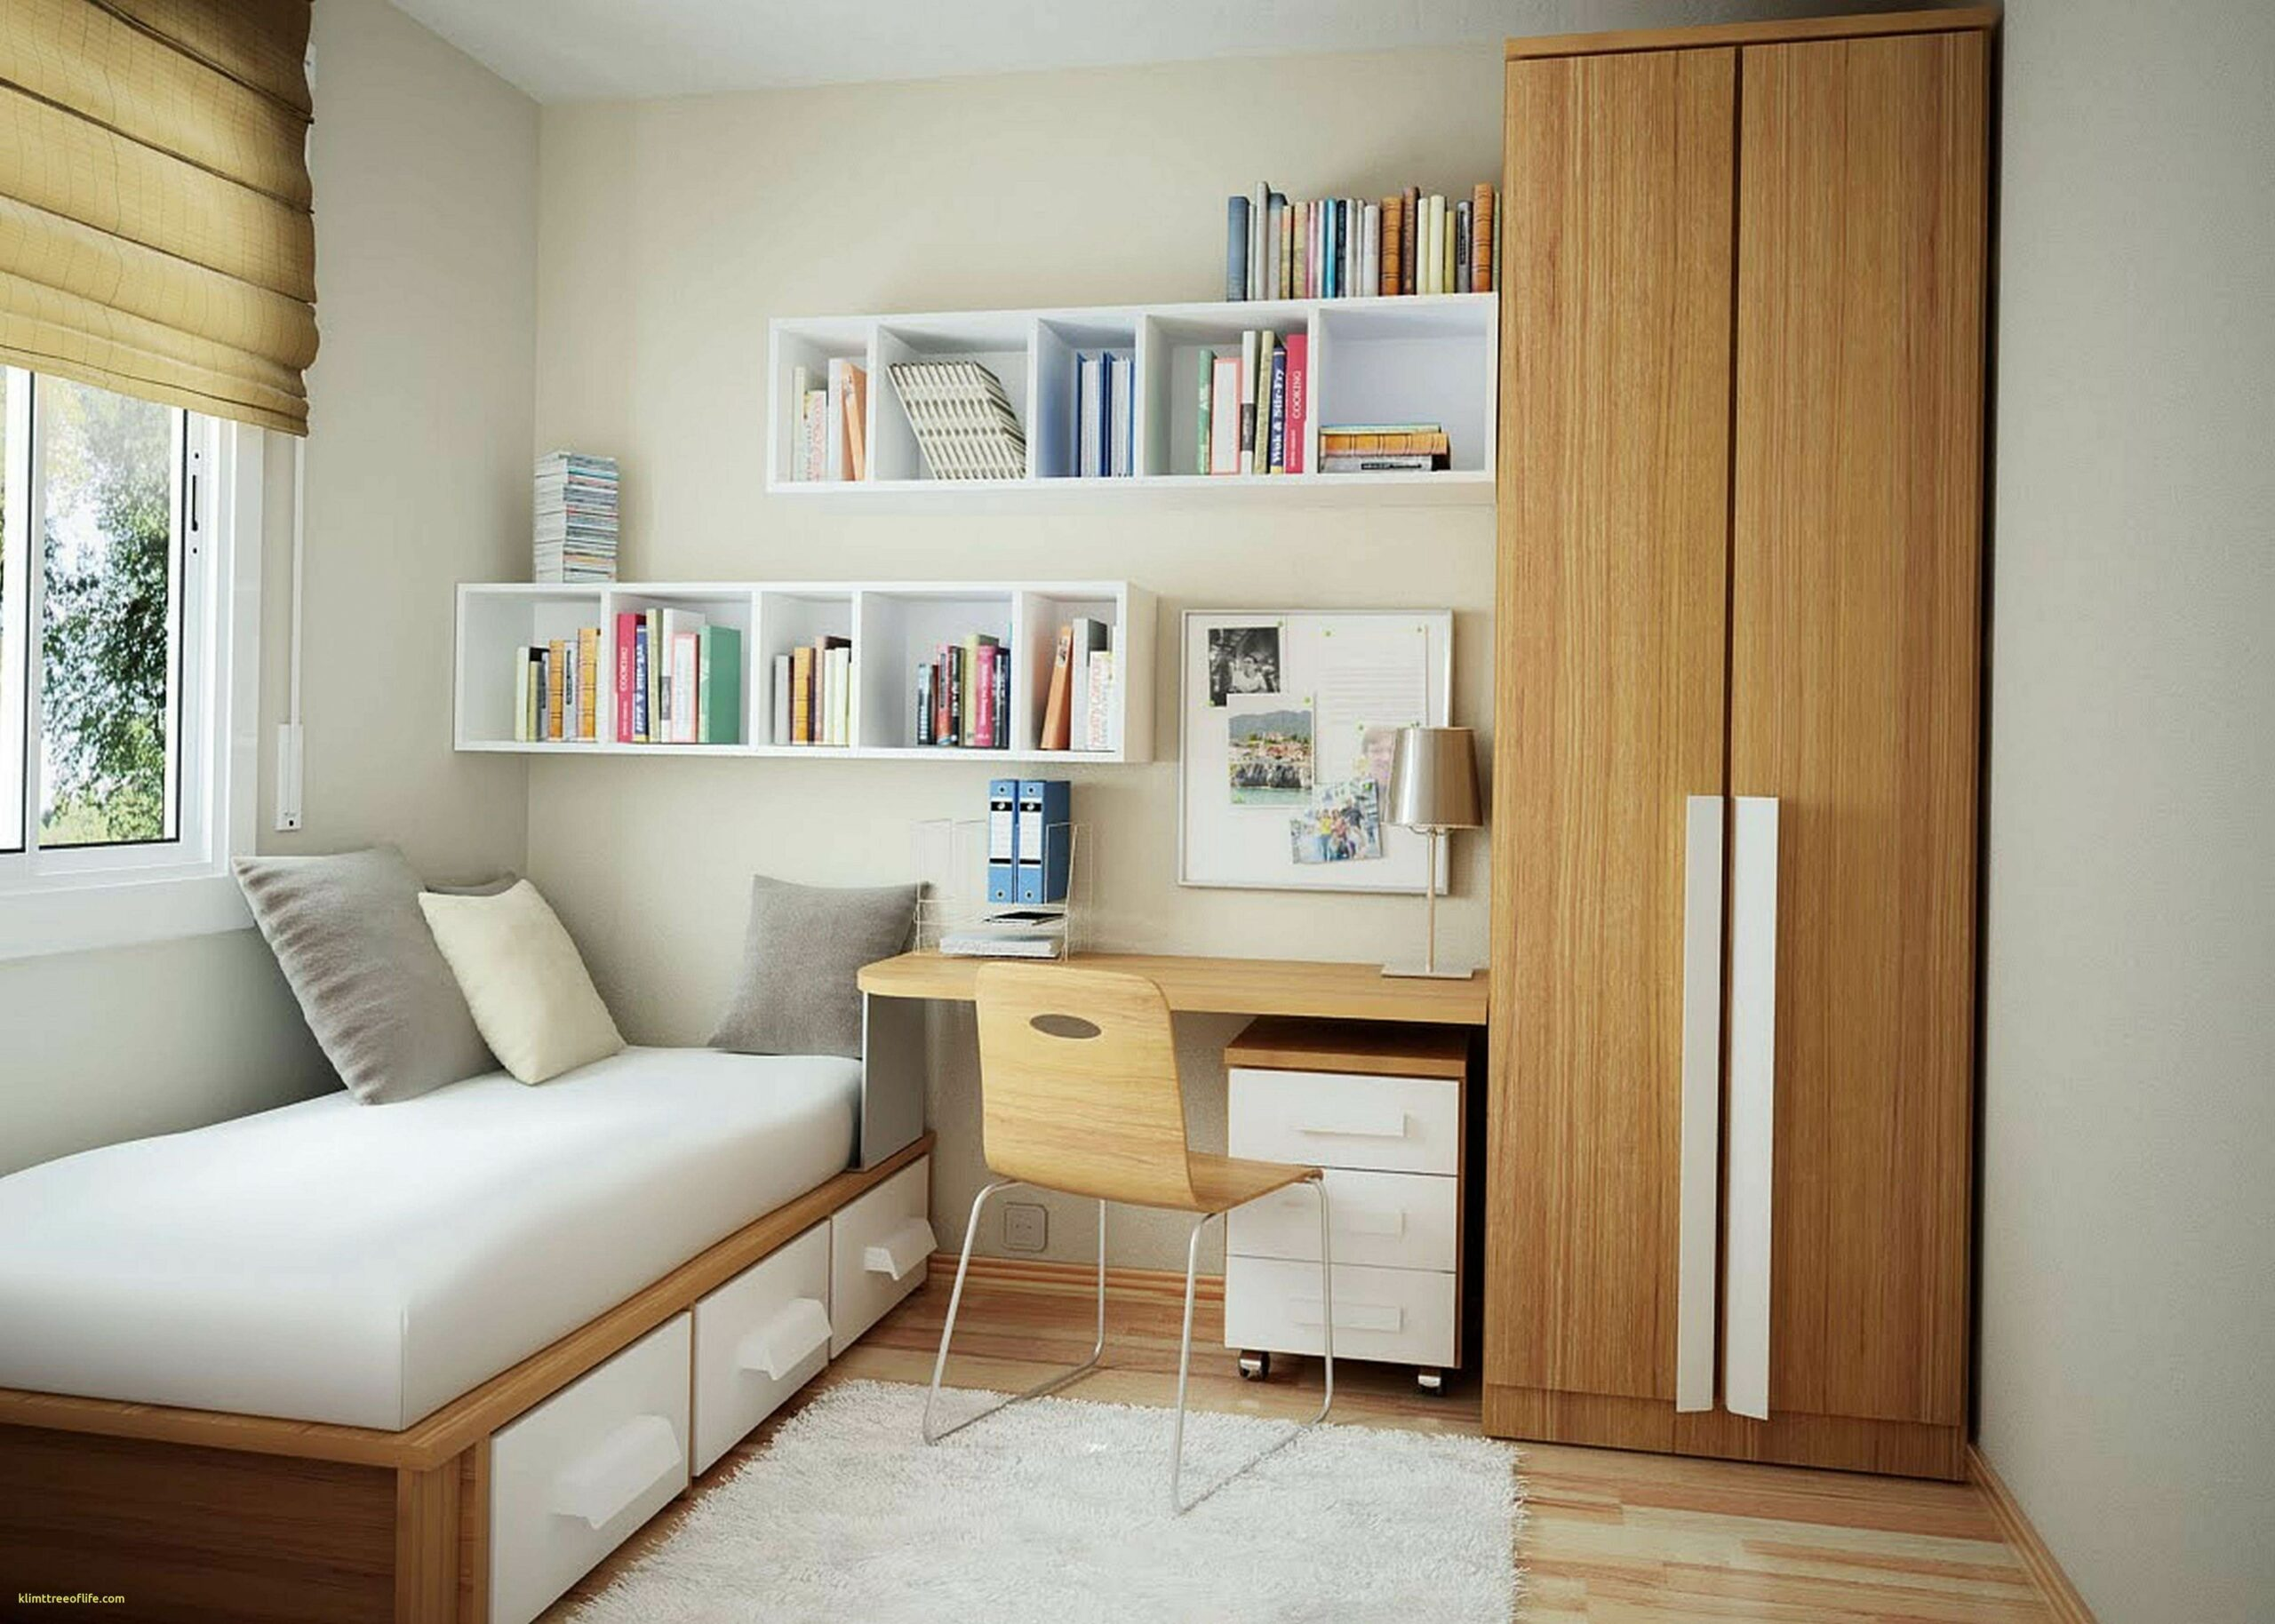 12 Beautiful Minimalist Bedroom Design Ideas For Small Spaces ...